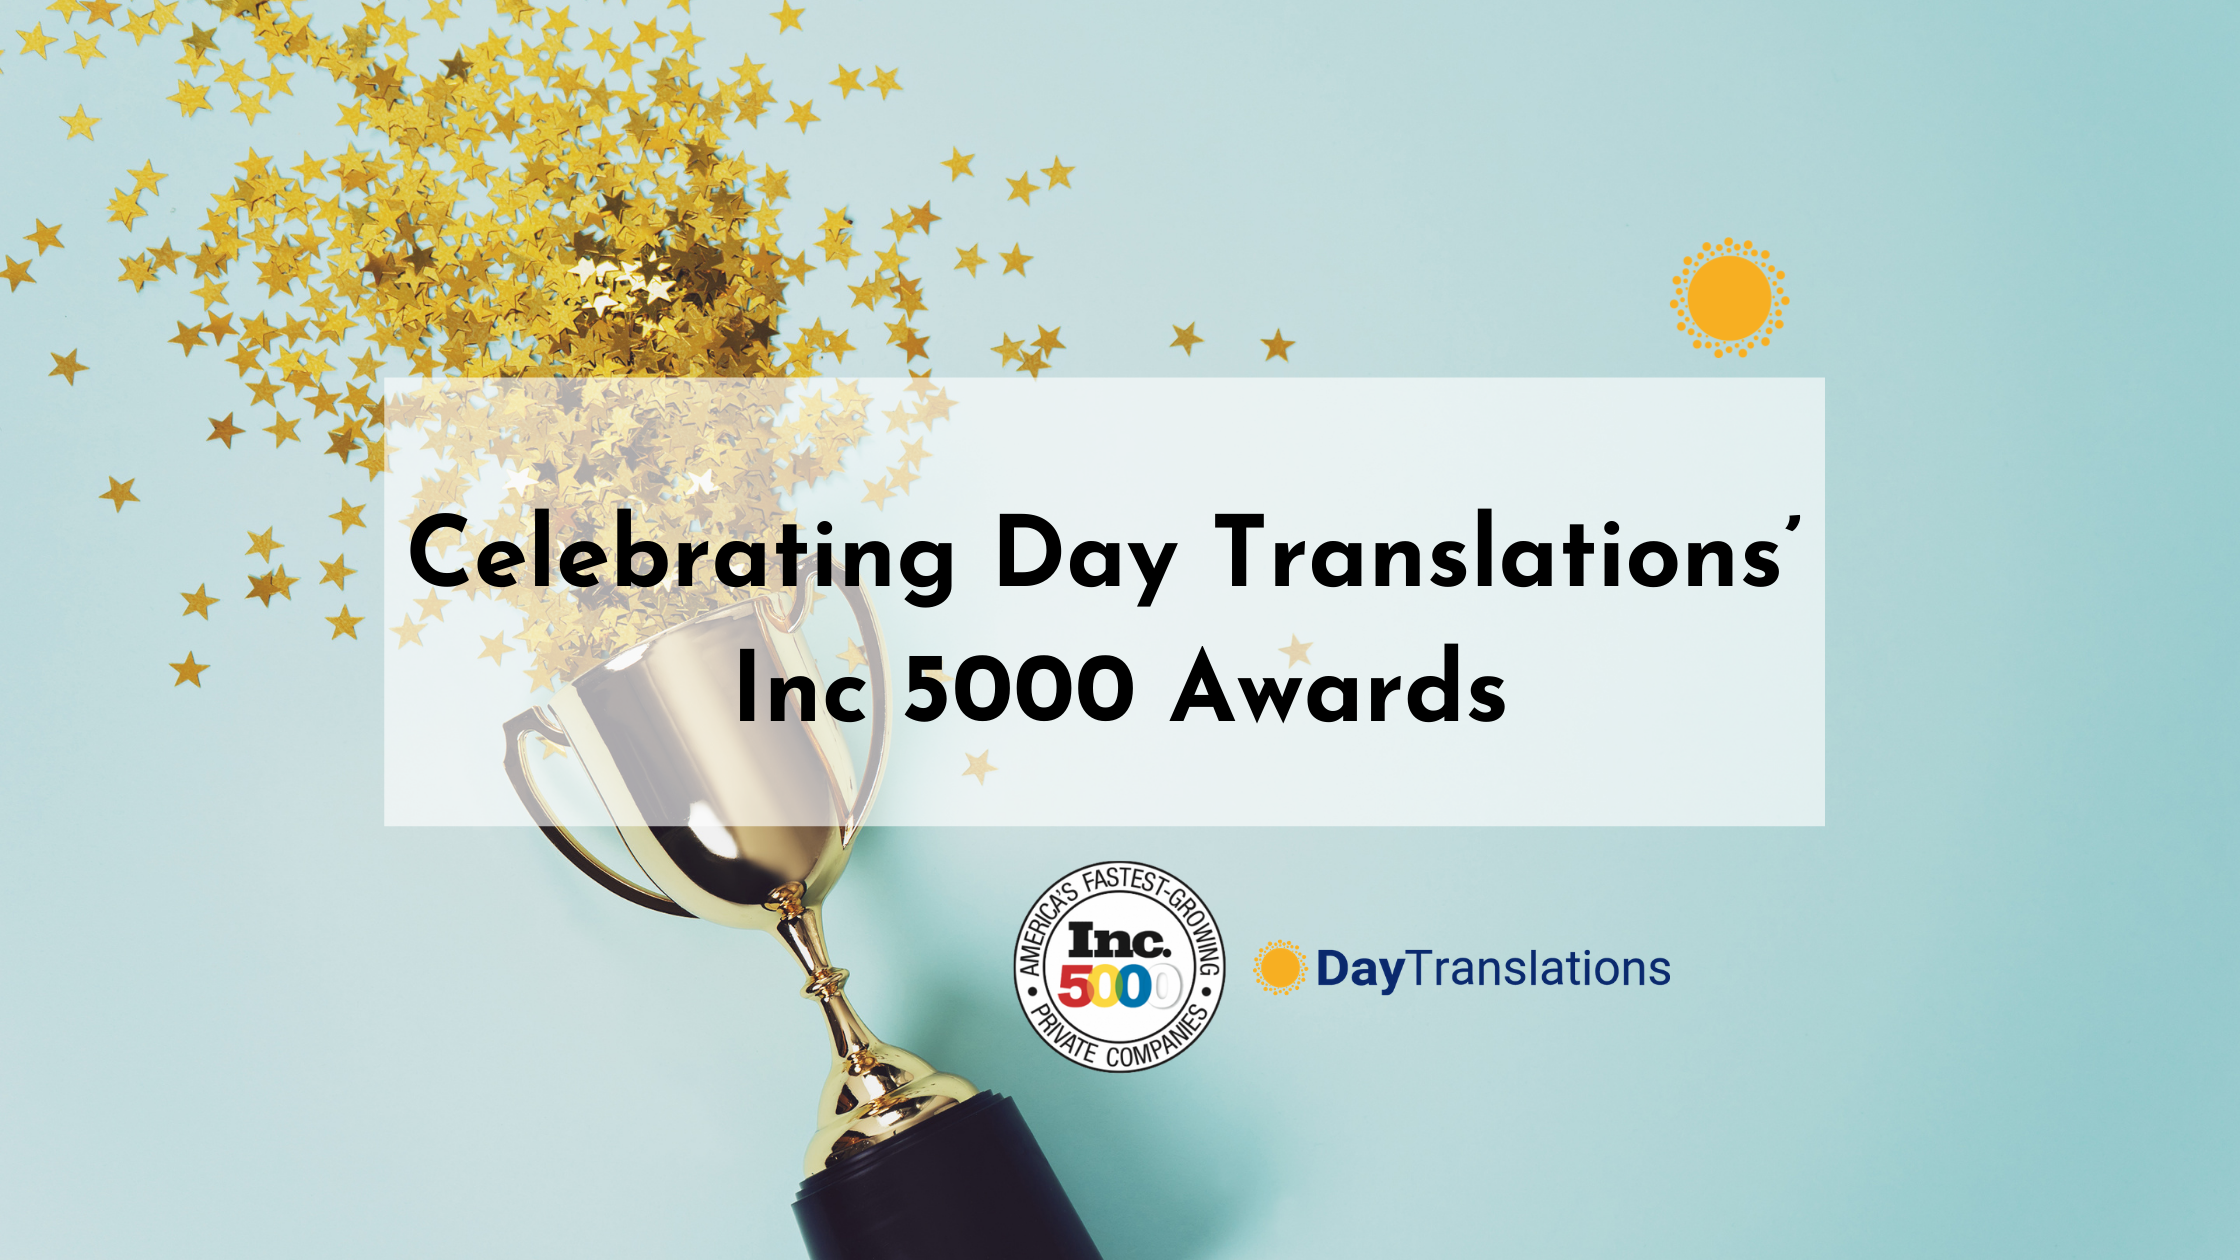 Celebrating Day Translations' Inc 5000 Awards and What It Means